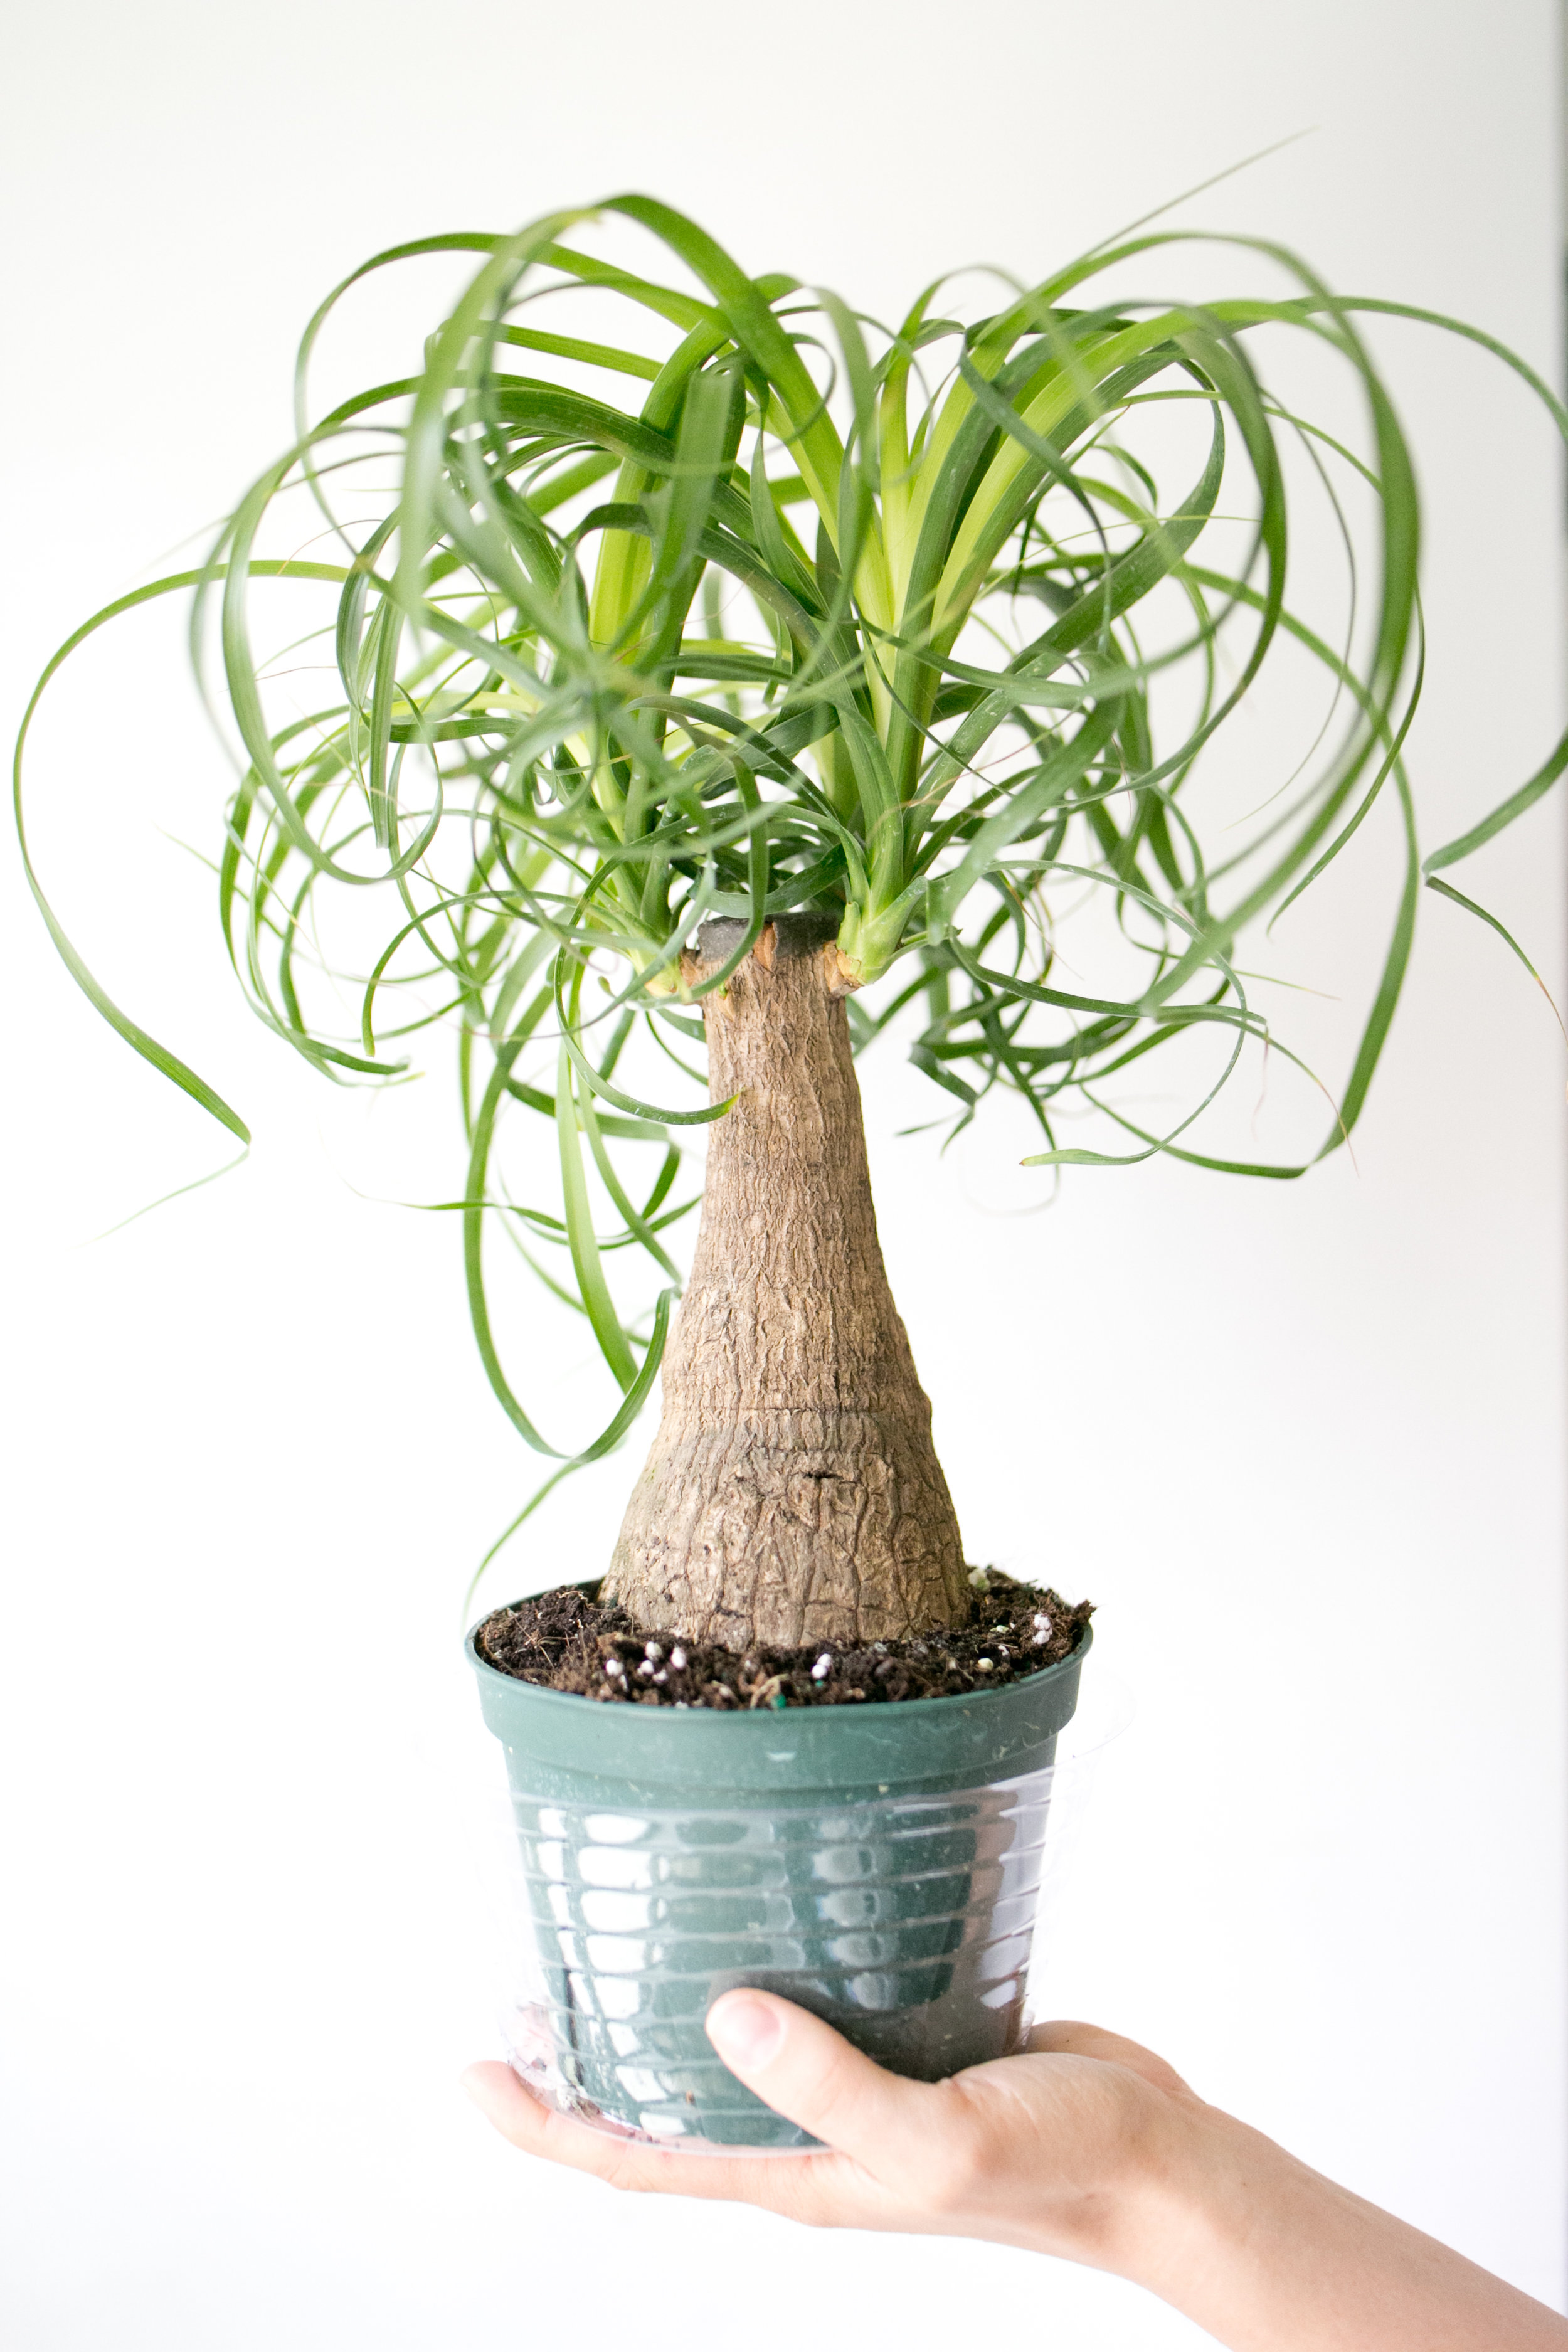 Ponytail palms ( Beaucarnea recurvata ) are sun lovers. Native to arid regions of Mexico, they require little water.